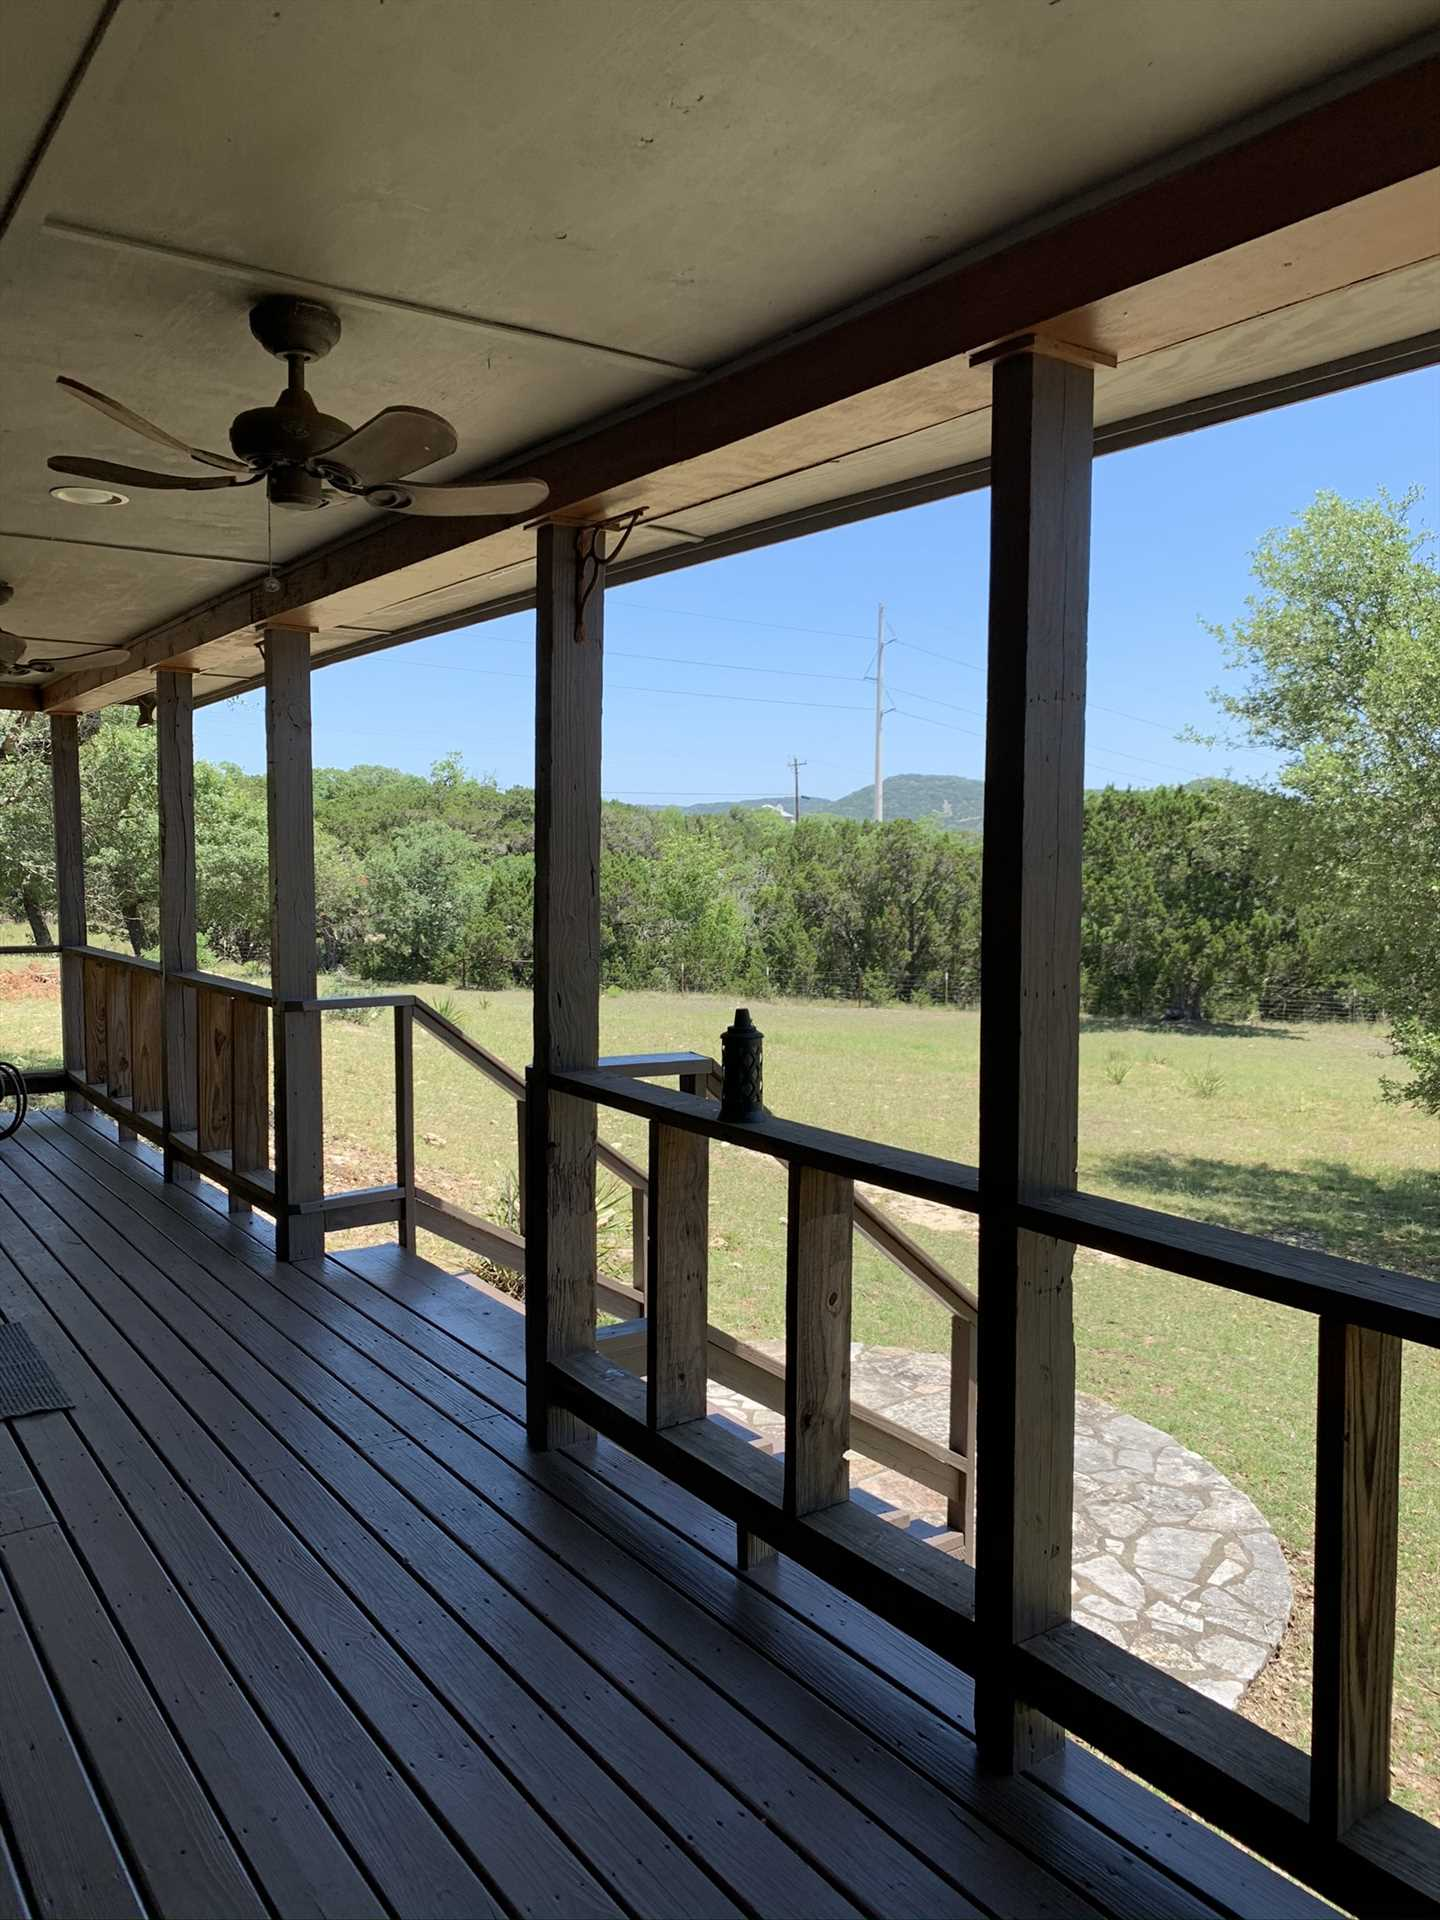 Even on still days, you can stir up a Hill Country breeze on the shaded porch with the help of ceiling fans.